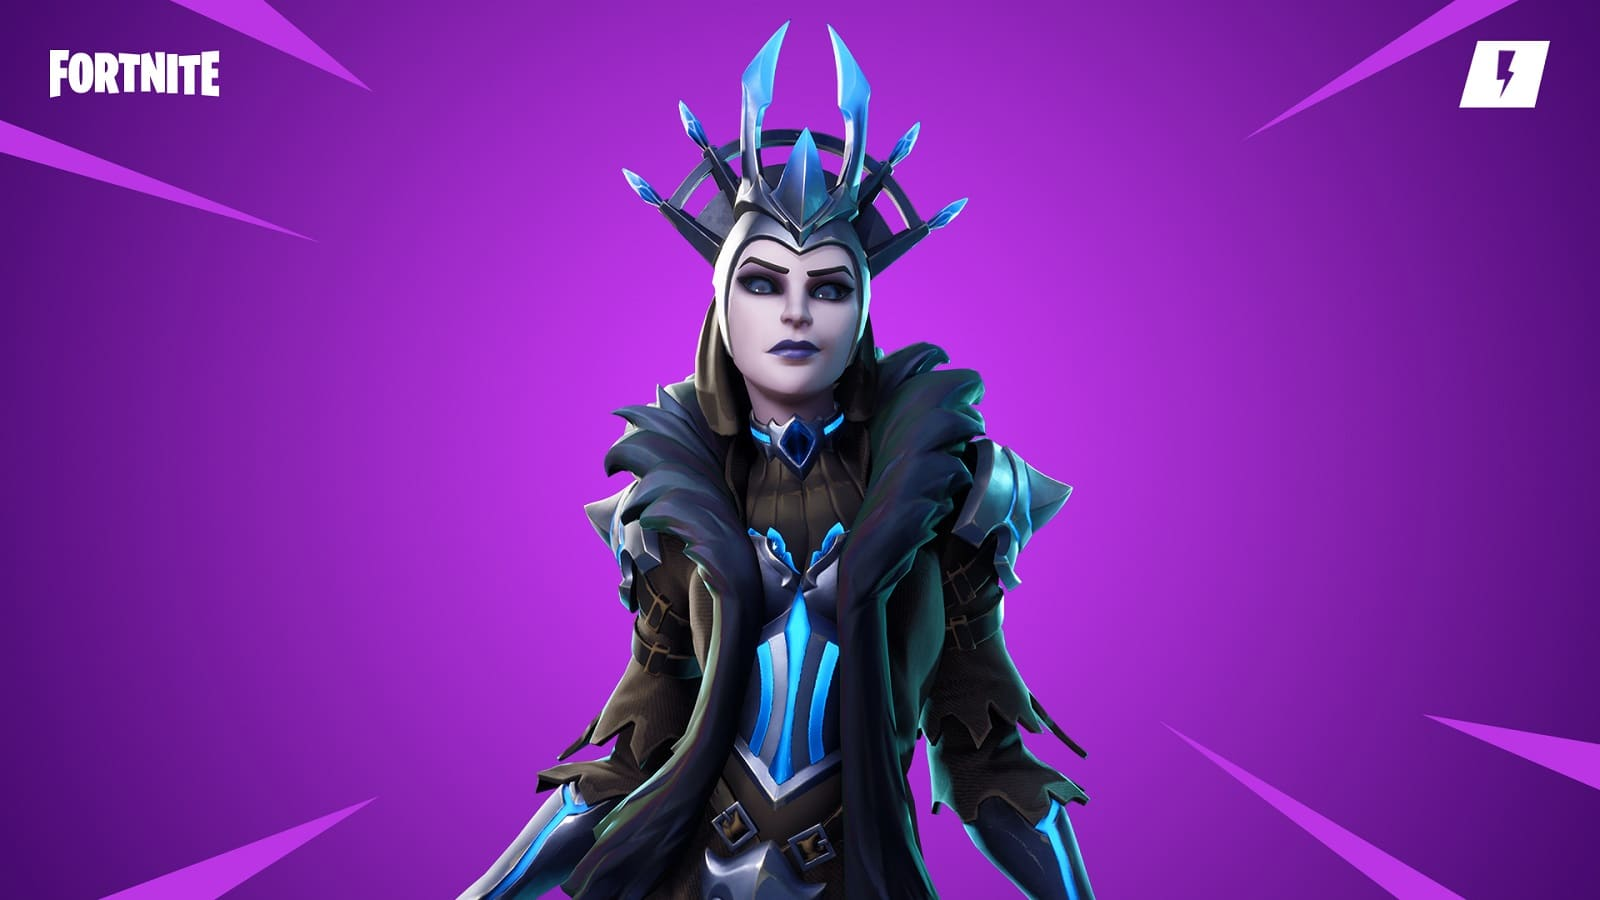 fortnite patch showing new character ice queen